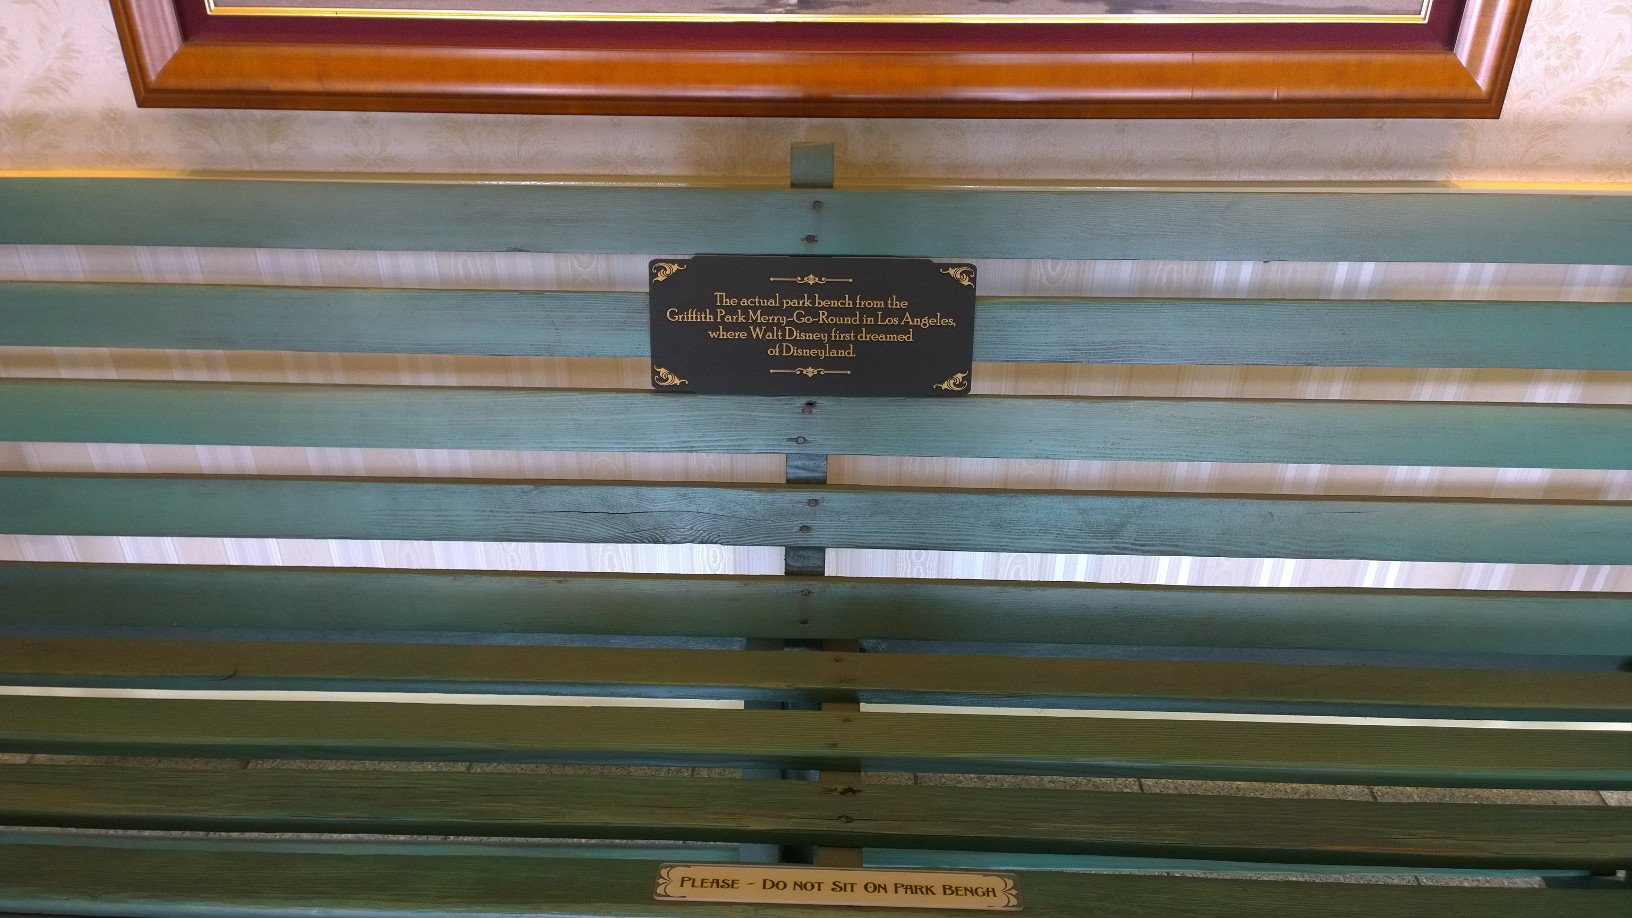 Griffith Park bench where Walt Disney got the idea for Disneyland. Currently on display in the Opera House on Disneyland's Main Street.